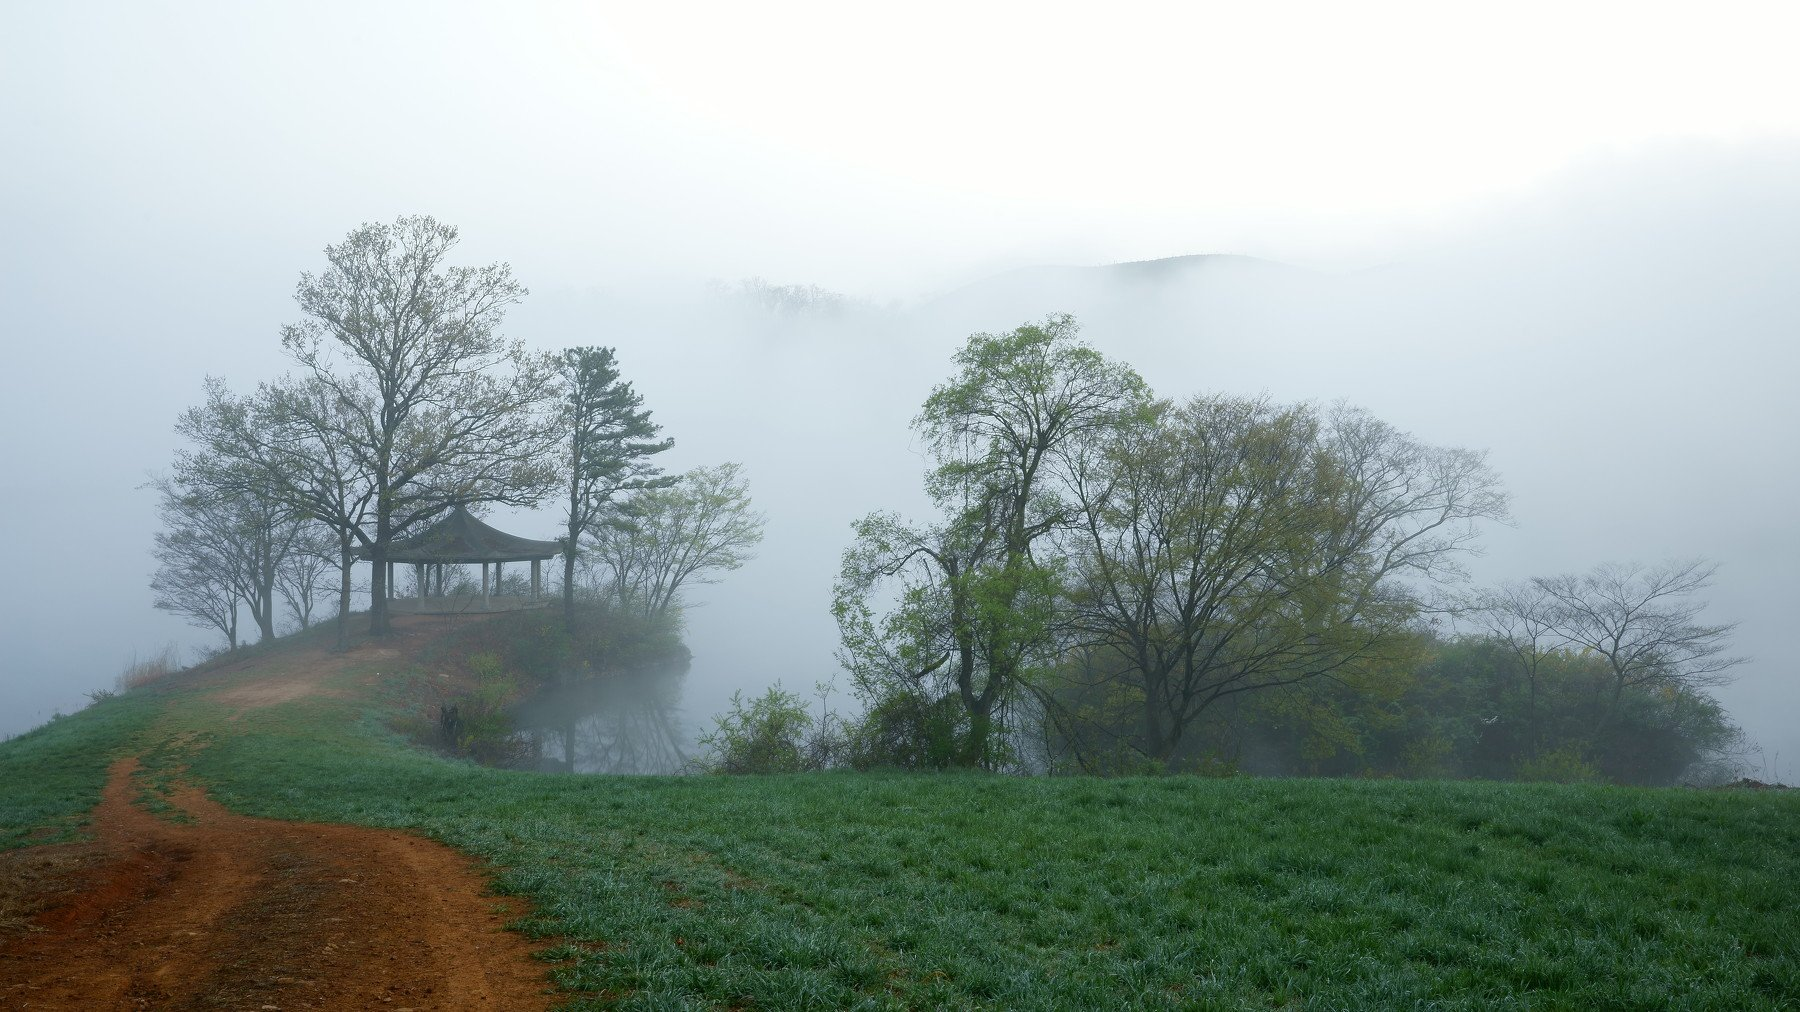 asia, south korea, korea, landscape, reservoir, fog, morning, nature, pavilion, tree, green, grass, mountain, path, springtime, , Shin